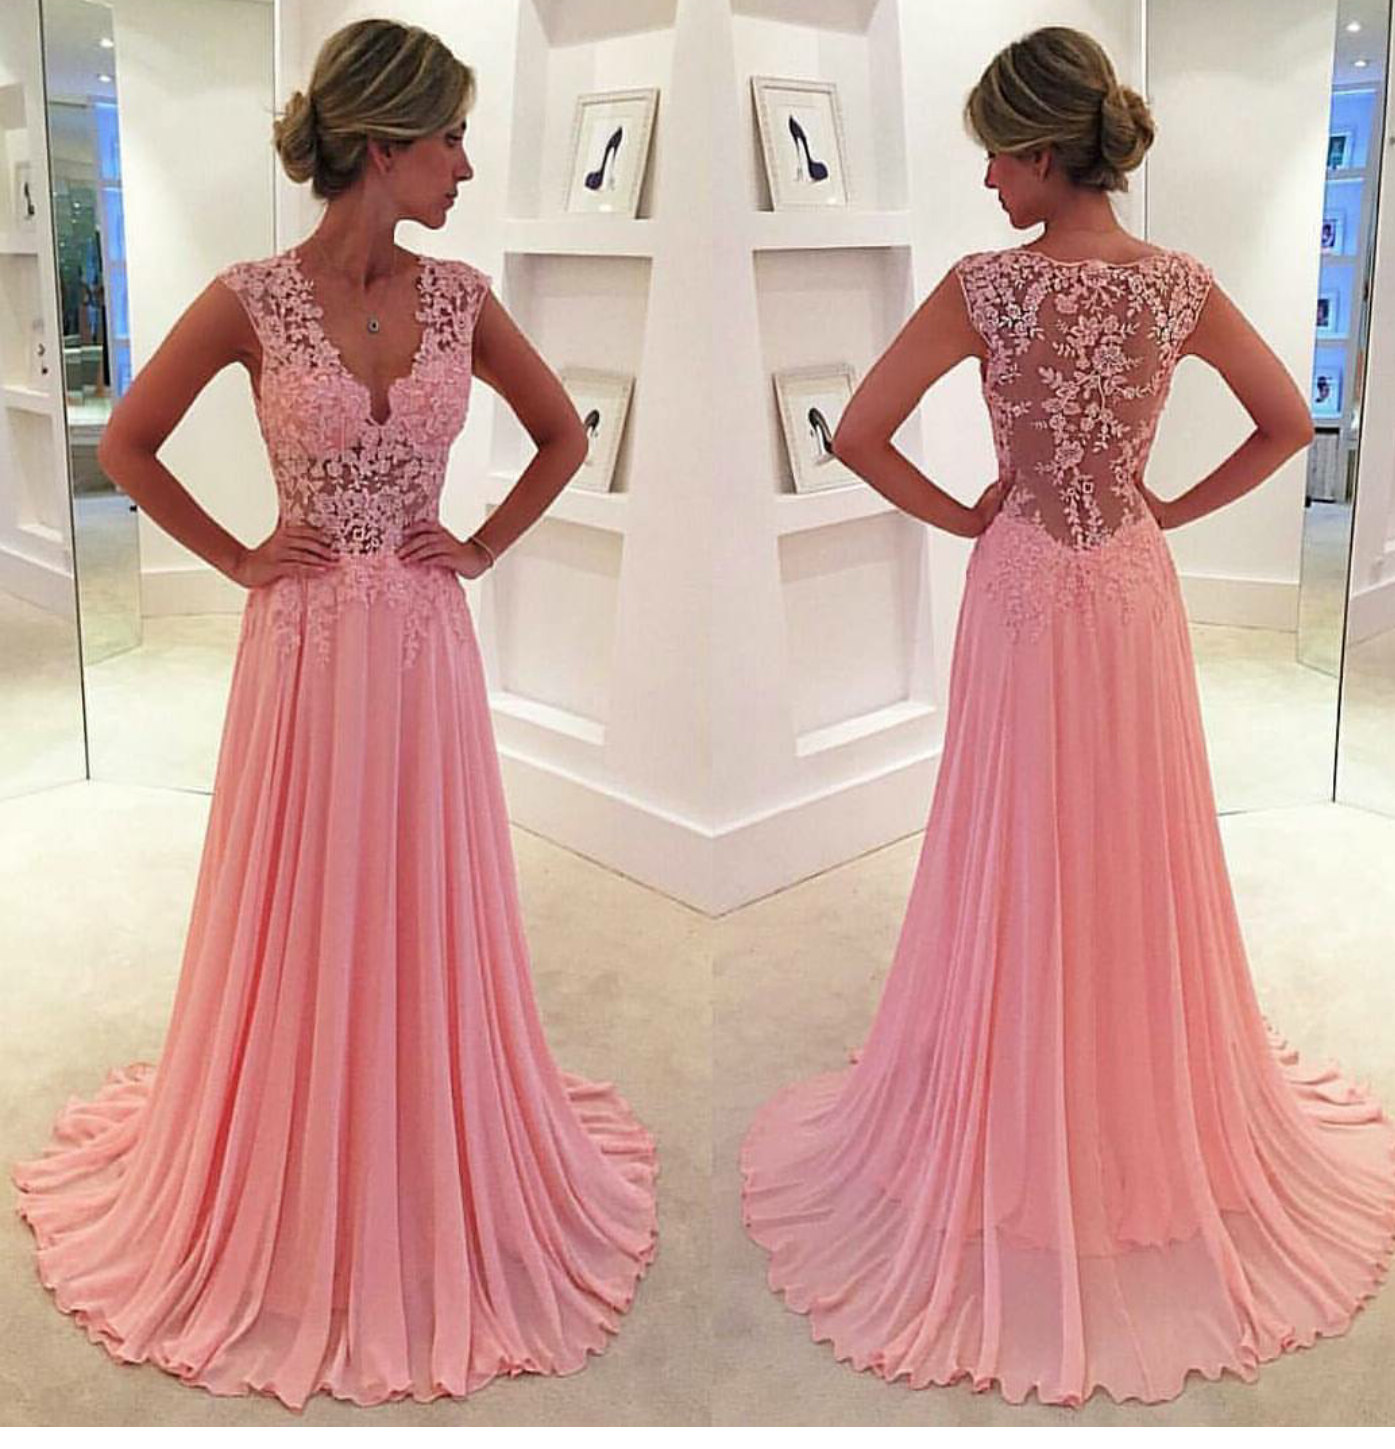 7594f3a25424d2 Lace V-neck see-through long chiffon prom dress Blush Pink Vintage Lace  Classic